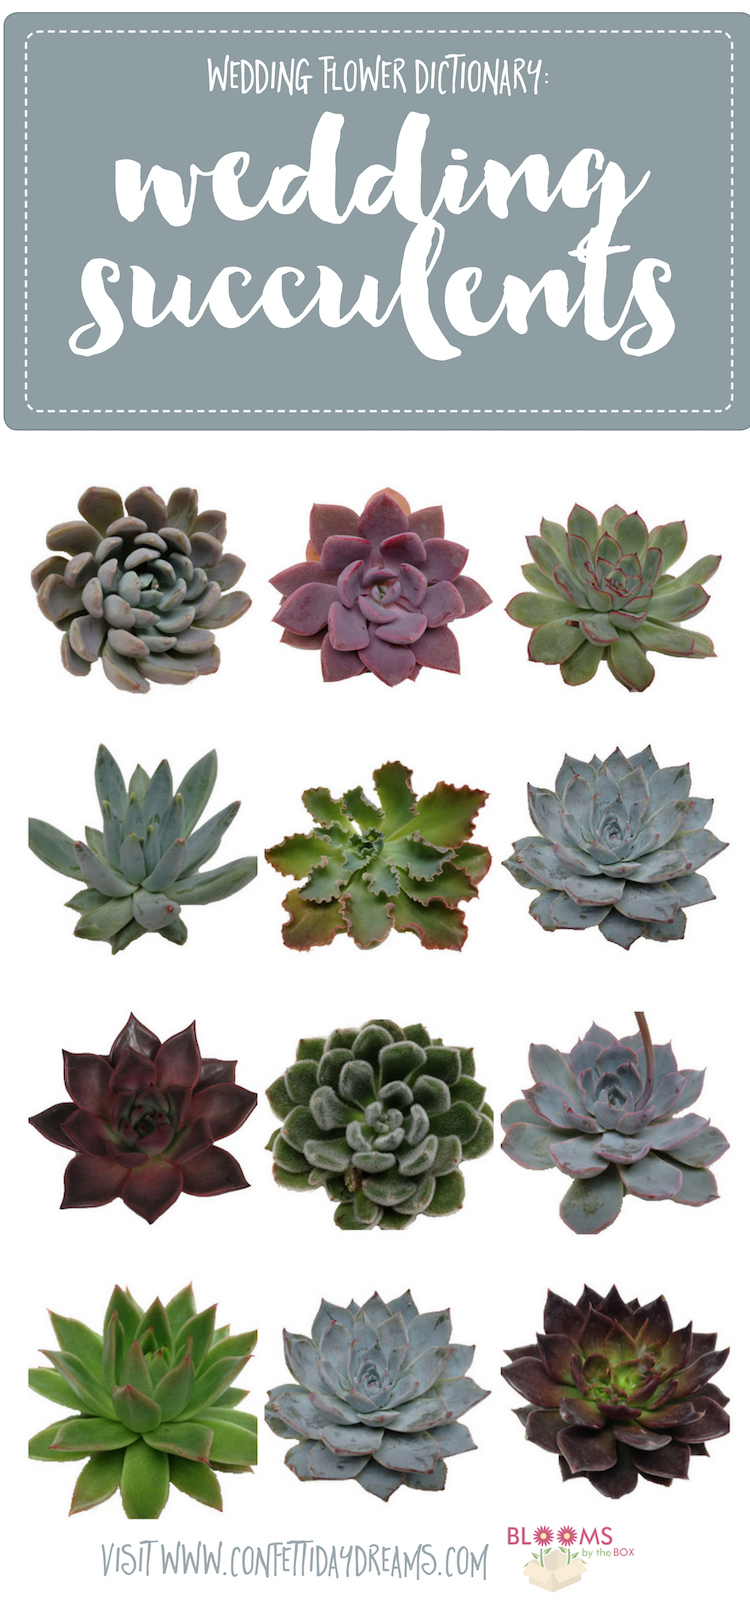 These Long Lasting Love Giving Little Plants Come In A Wide Range Of Shapes Sizes And Colors So It Can Be Difficult To Settle On Just One